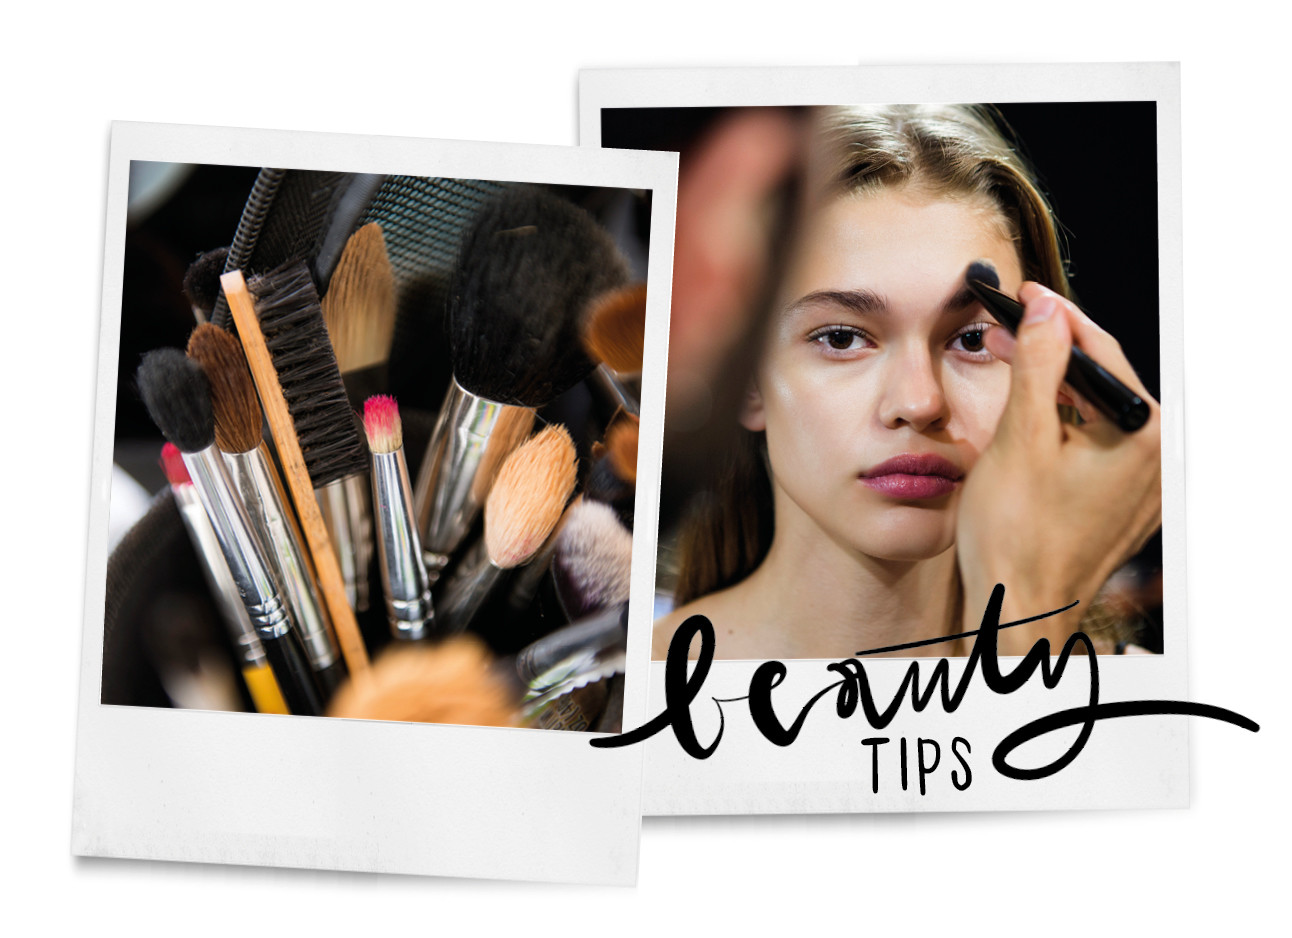 beauty tips kwasten en make up vrouw model backstage fashionshow